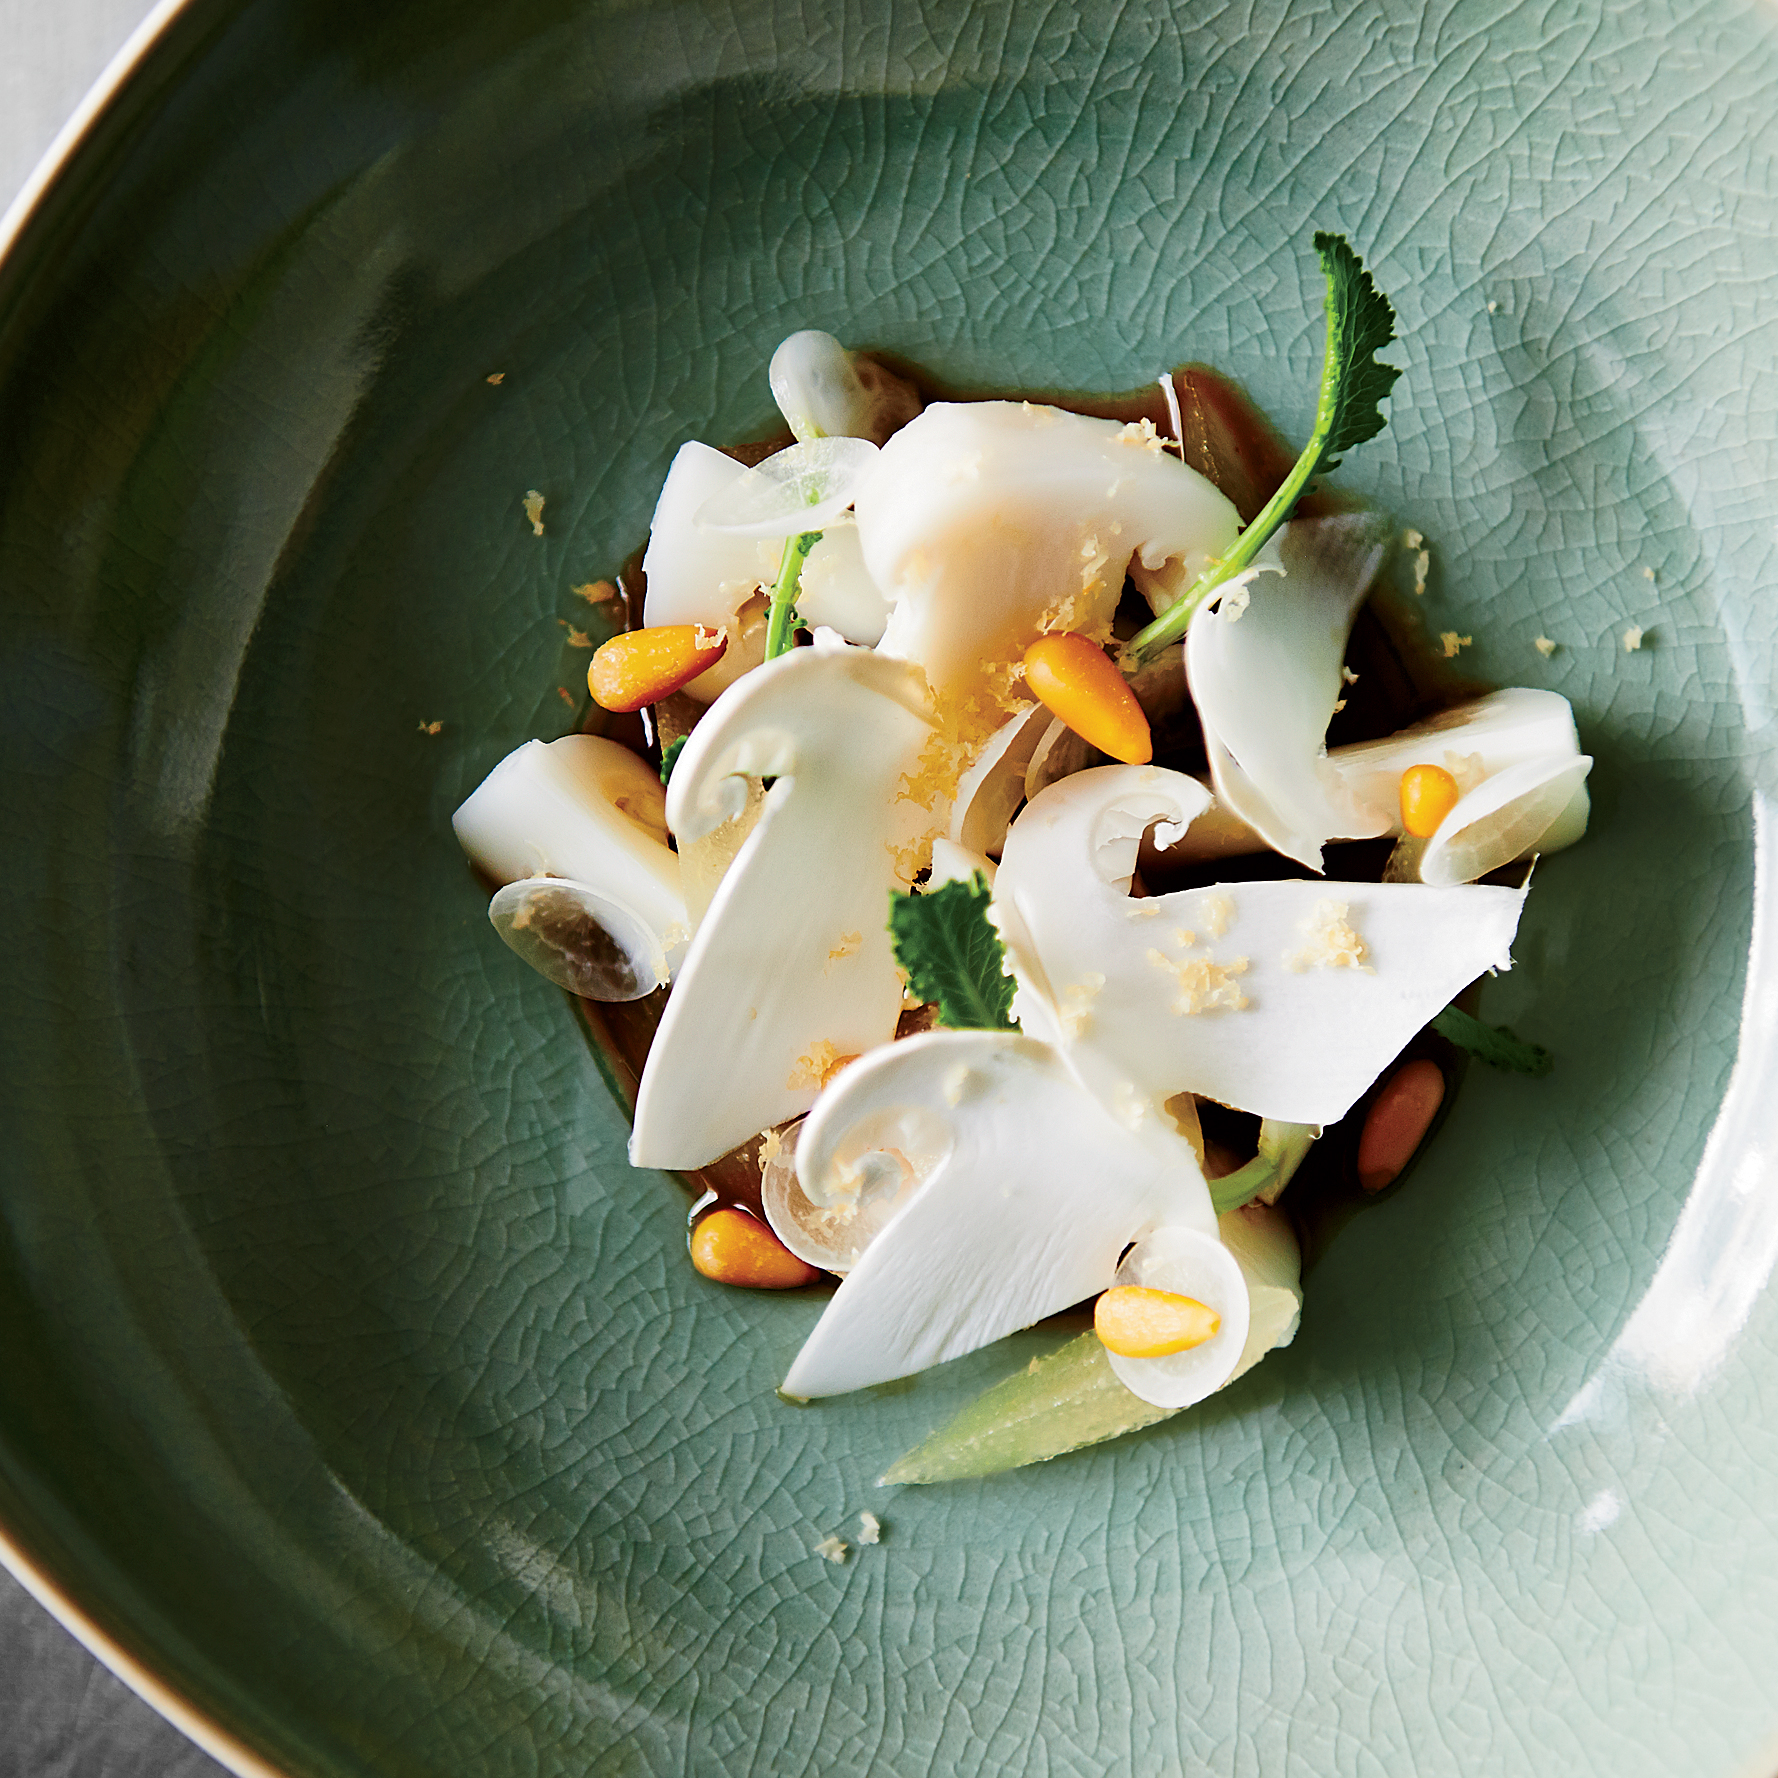 Marinated Pine Mushrooms with Asian Pear and Pine Nuts